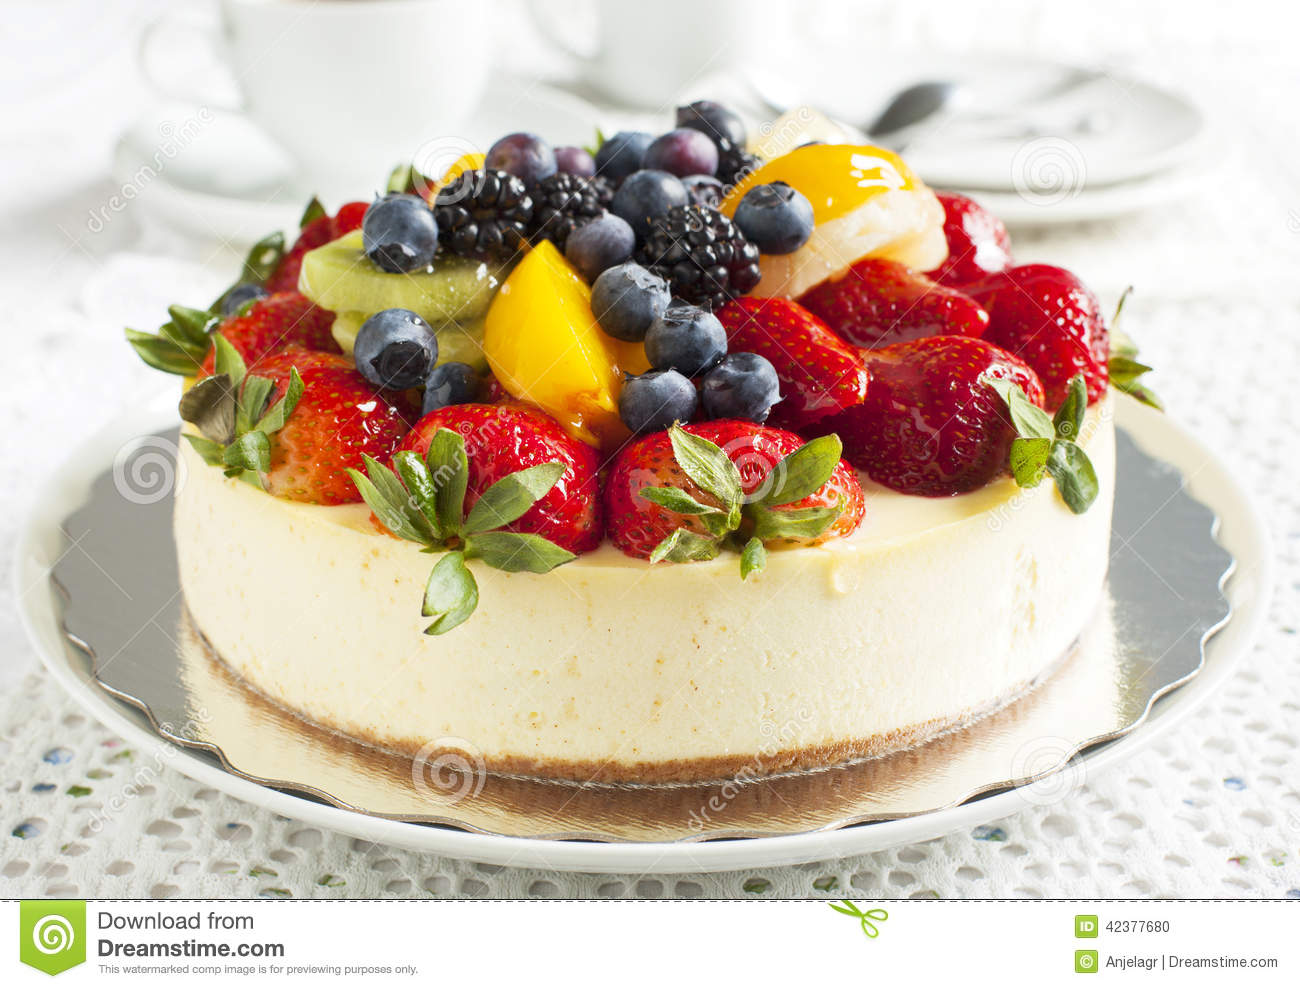 Fruit Decoration Gateau Orange Cheesecake Topped With Berries And Fruits Stock Photo